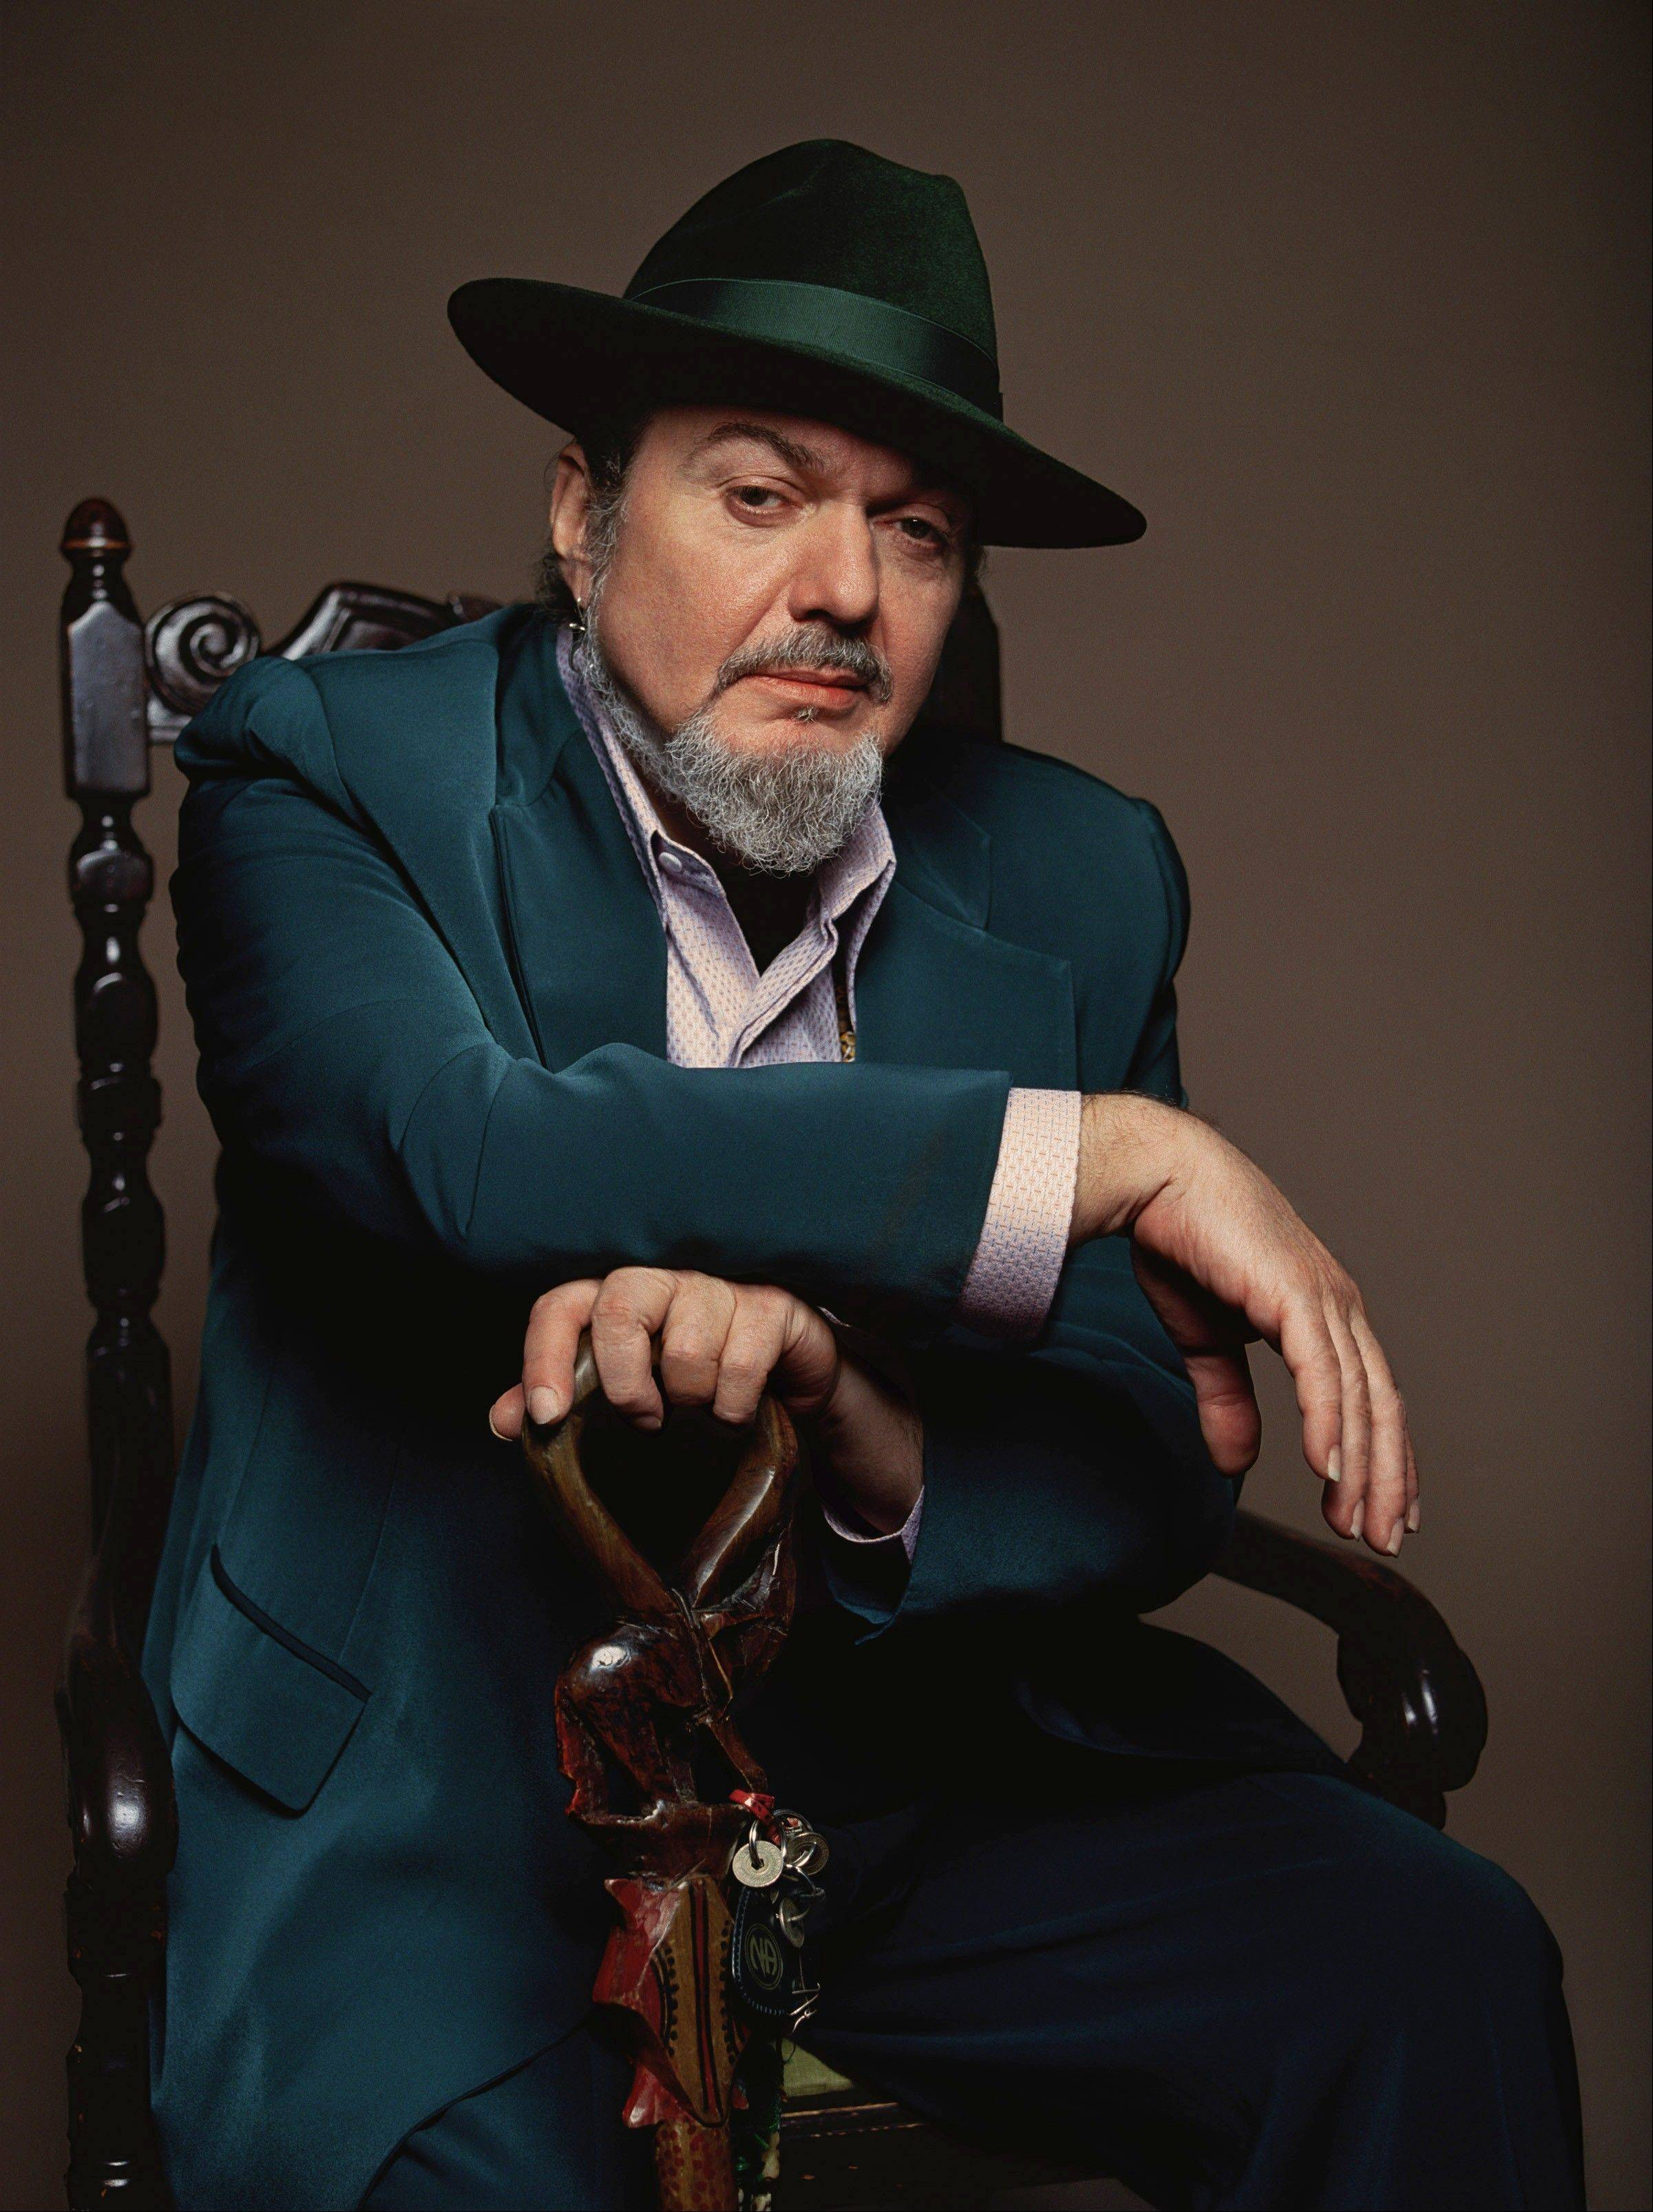 Dr. John will perform at this year's Blues on the Fox at the RiverEdge Park Music Garden in Aurora.